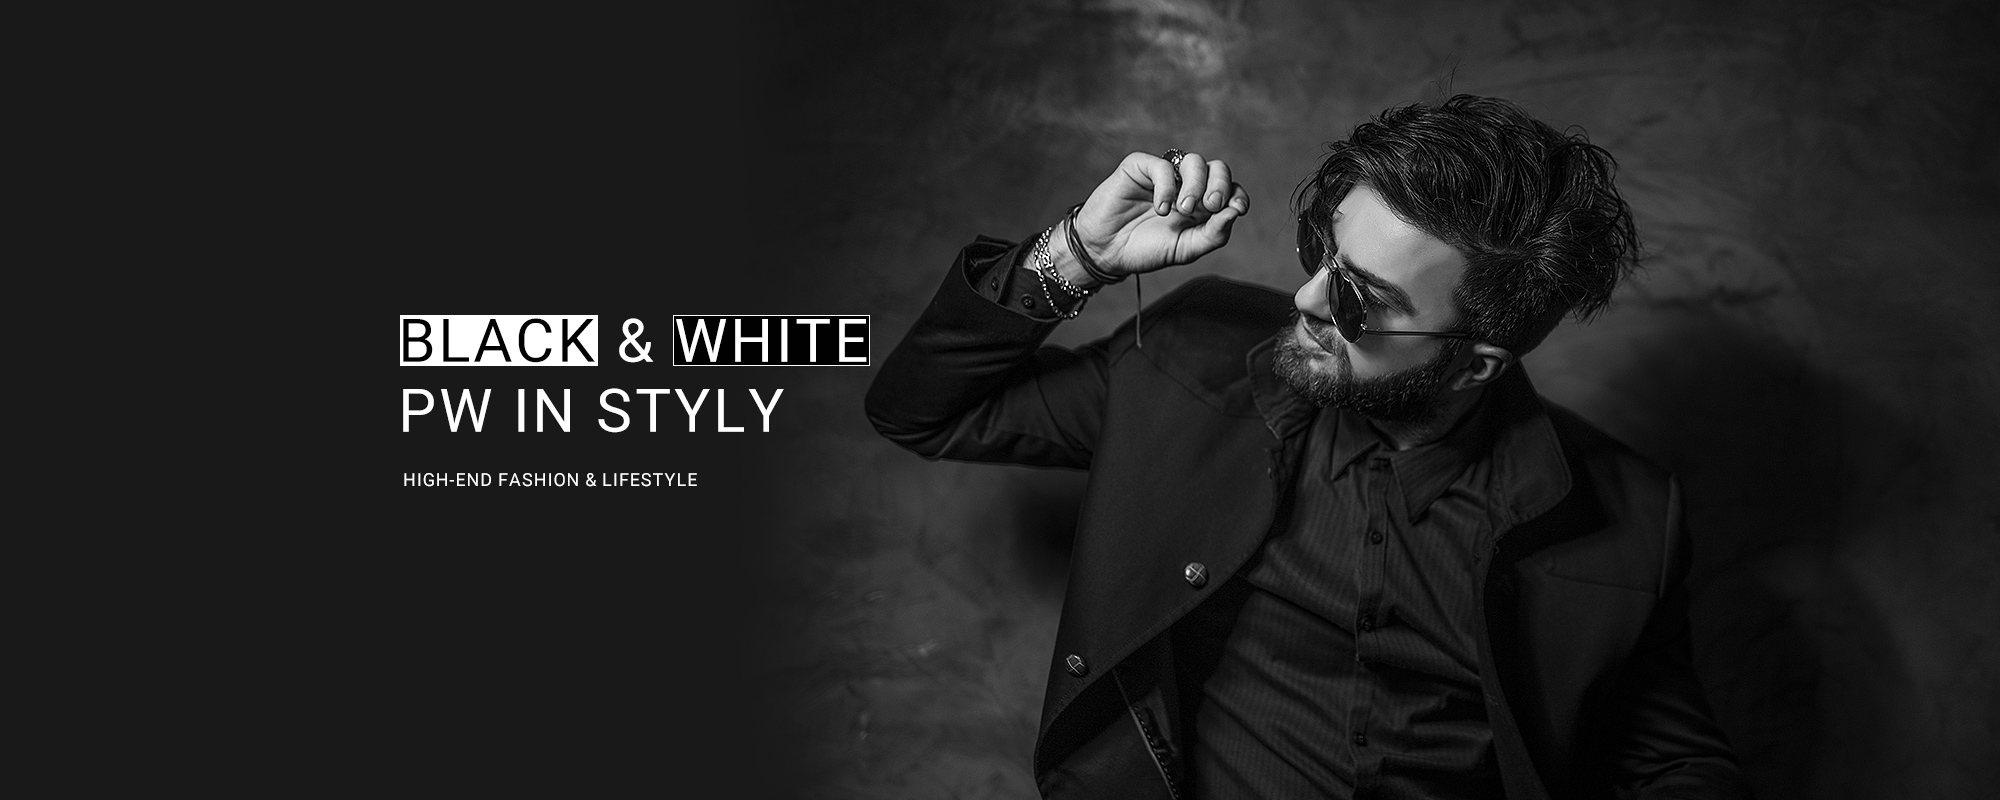 BLACk & WHITE PW IN STYLY HIGH-END FASHION & LIFESTYLE